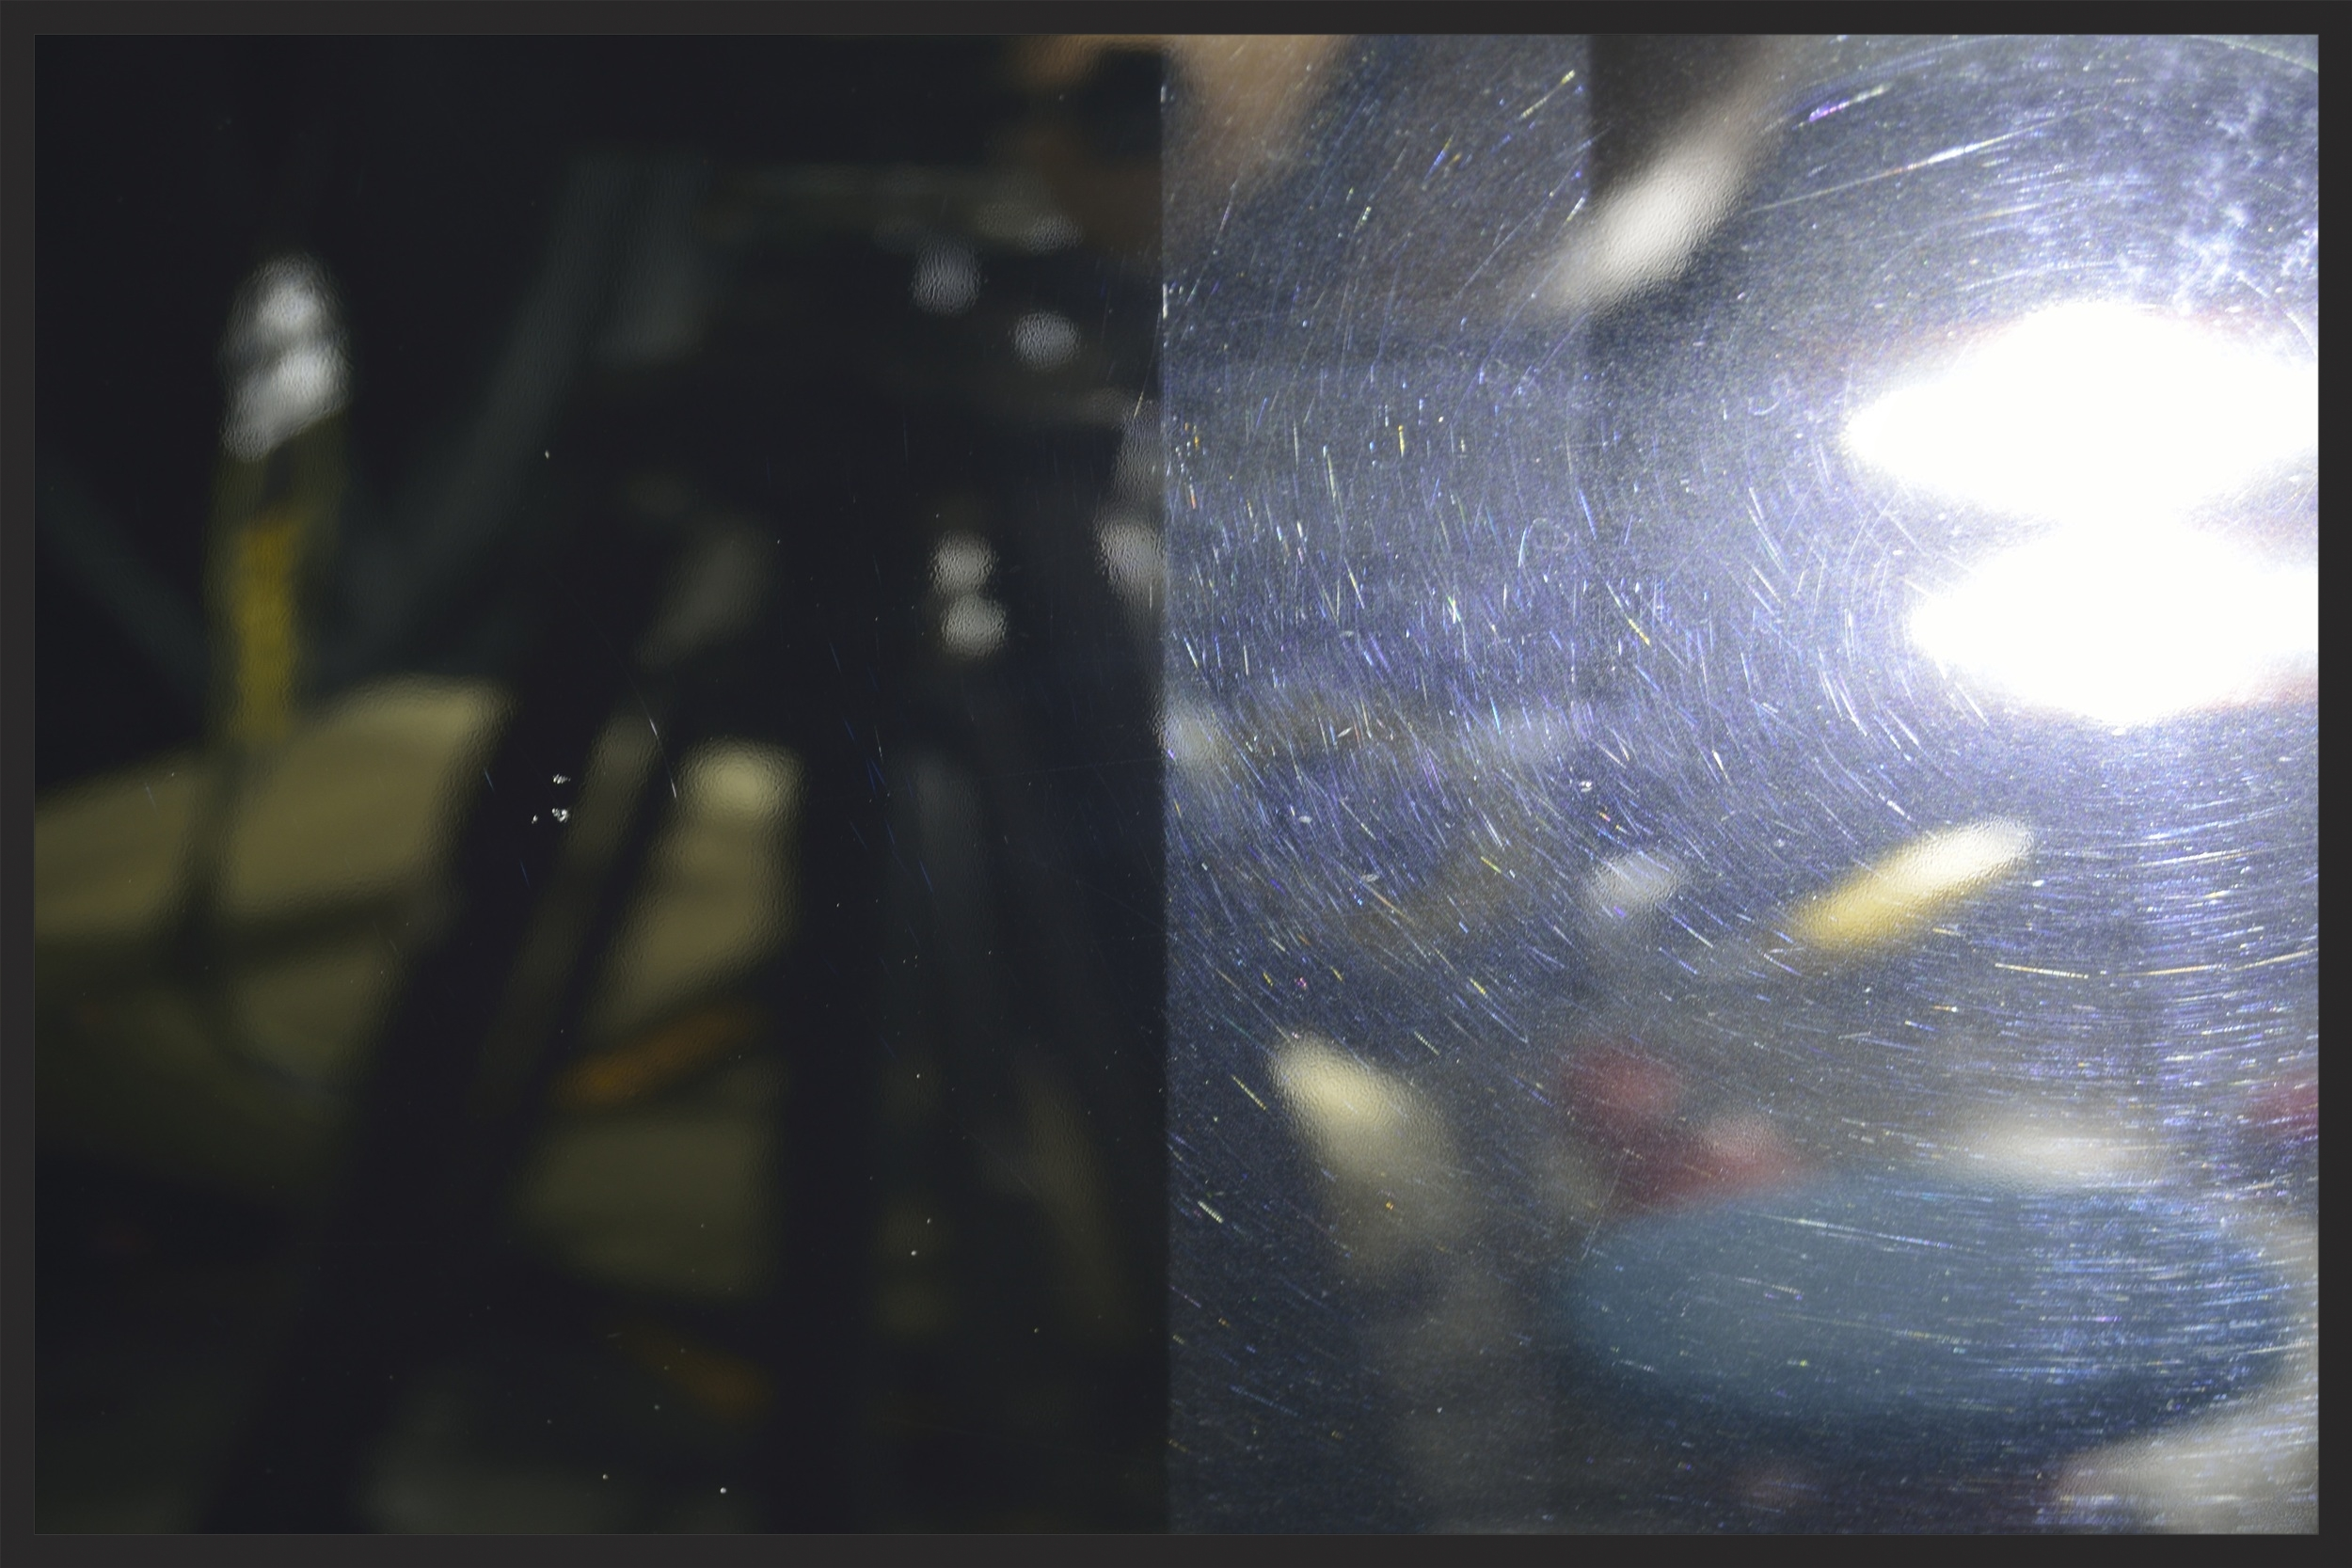 Paint Correction 50/50 Shot - Left Side After Correction, Right Side Before Correction